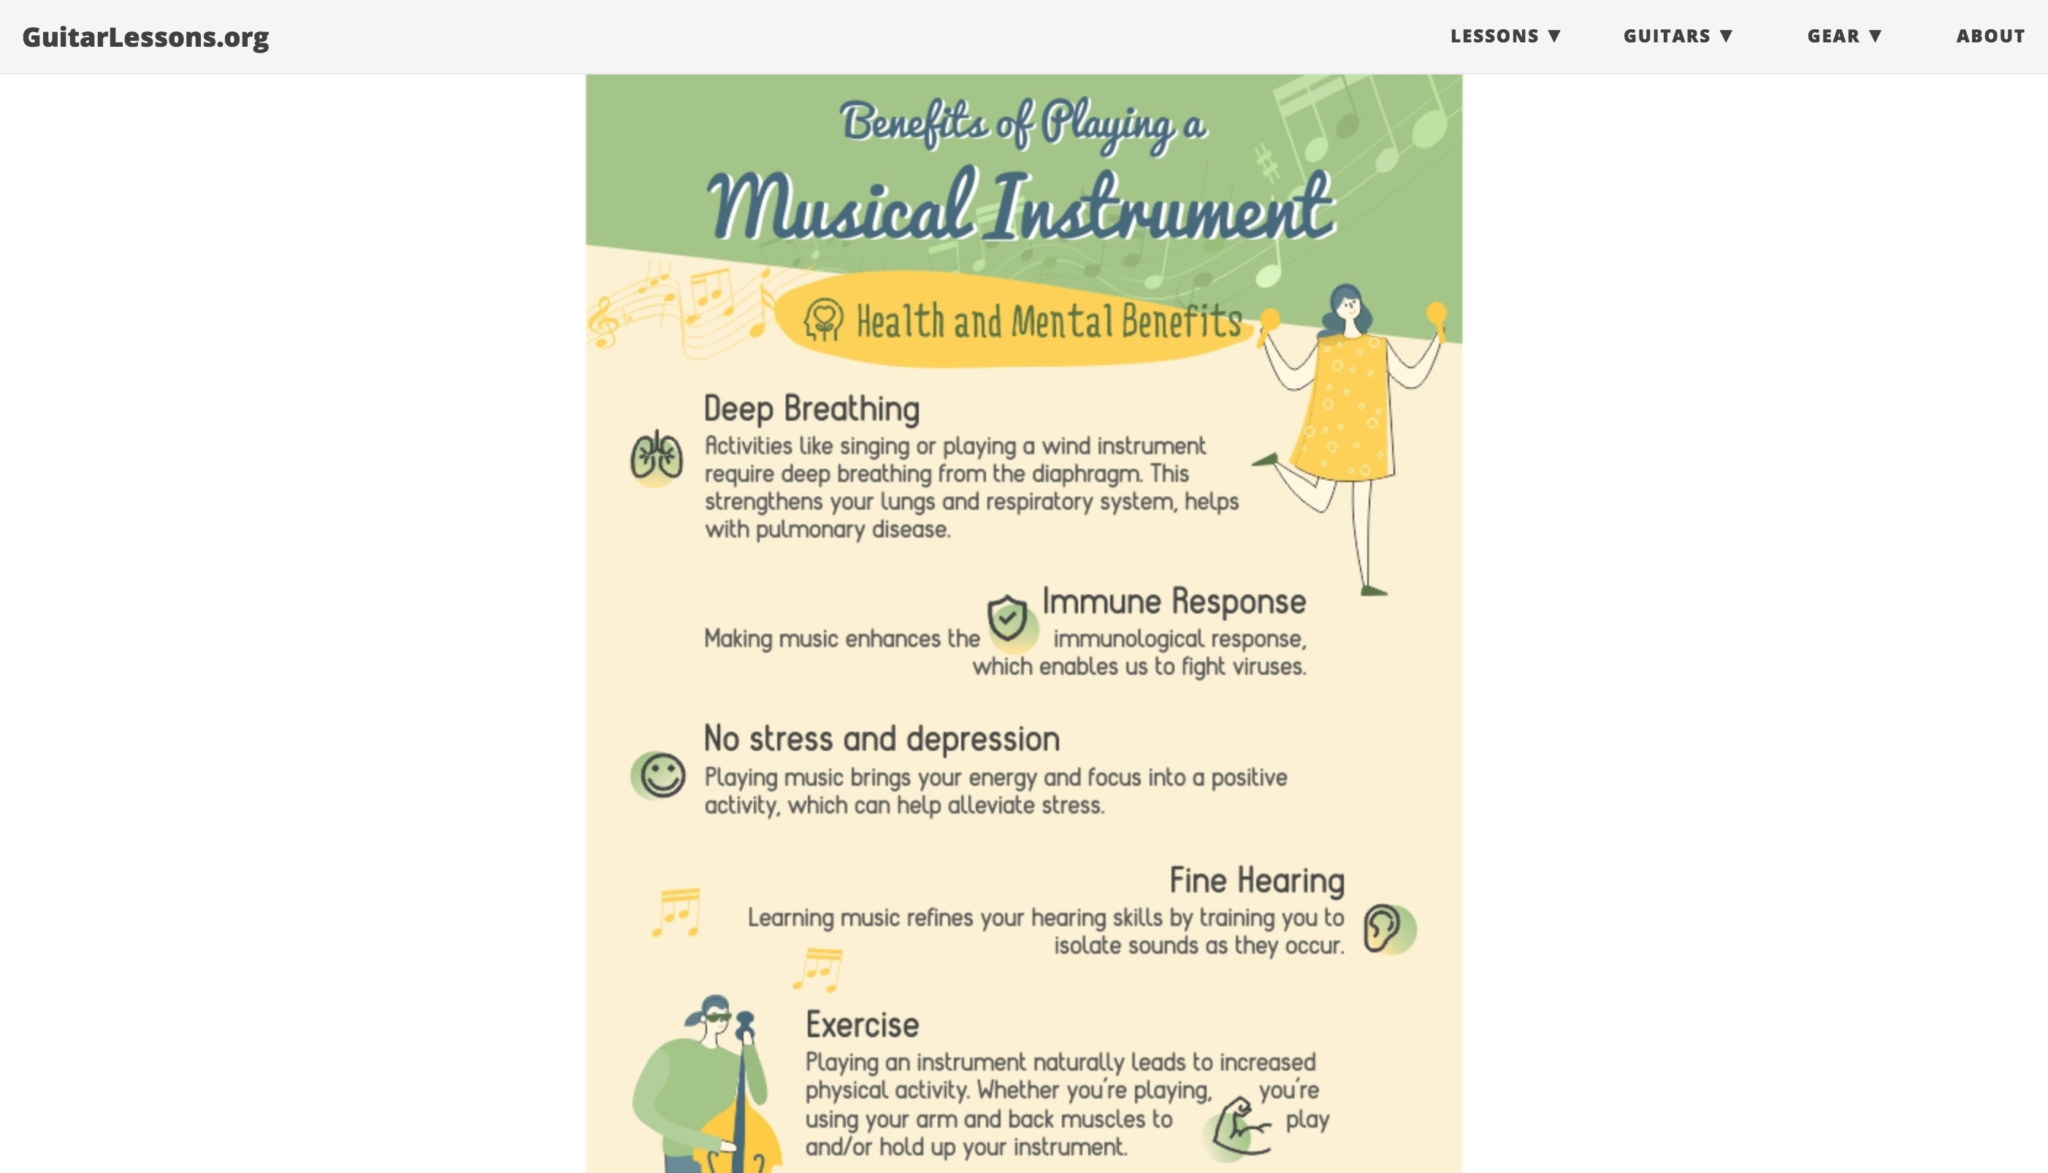 The Benefits of Playing a Musical Instrument 3